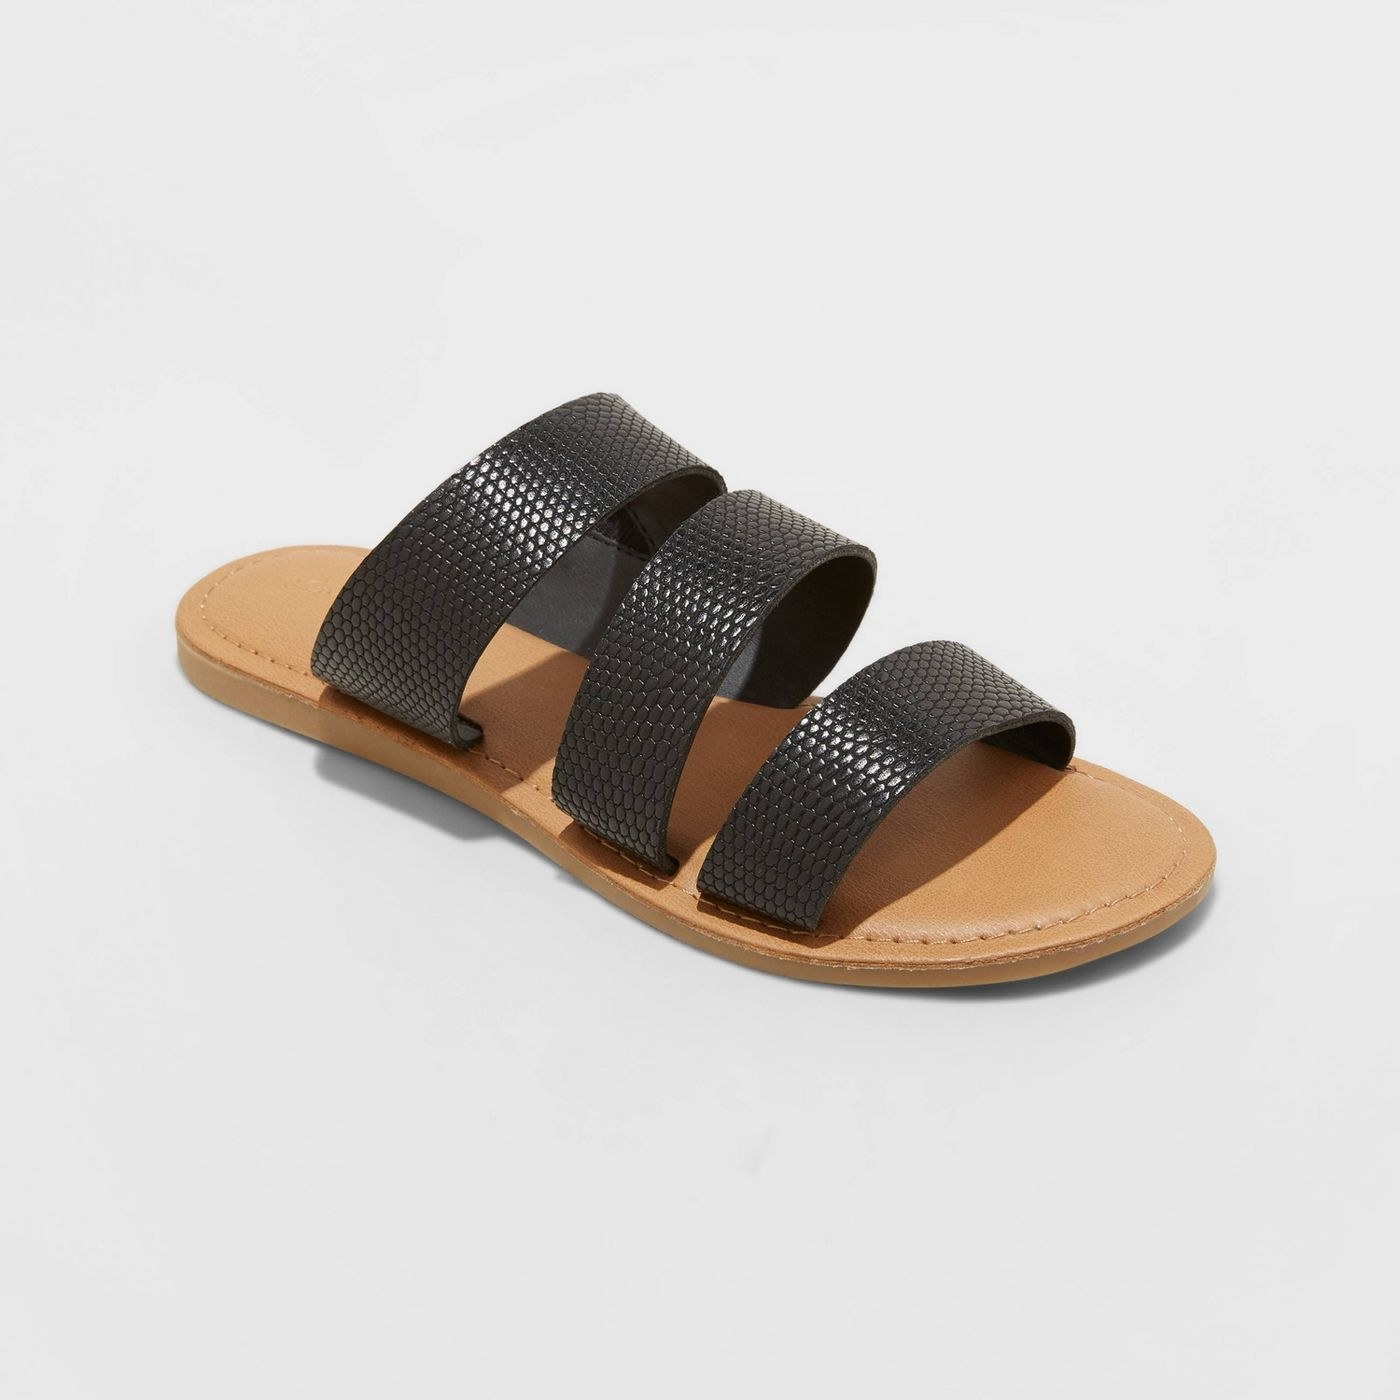 Black sandals with textured print and tan sole